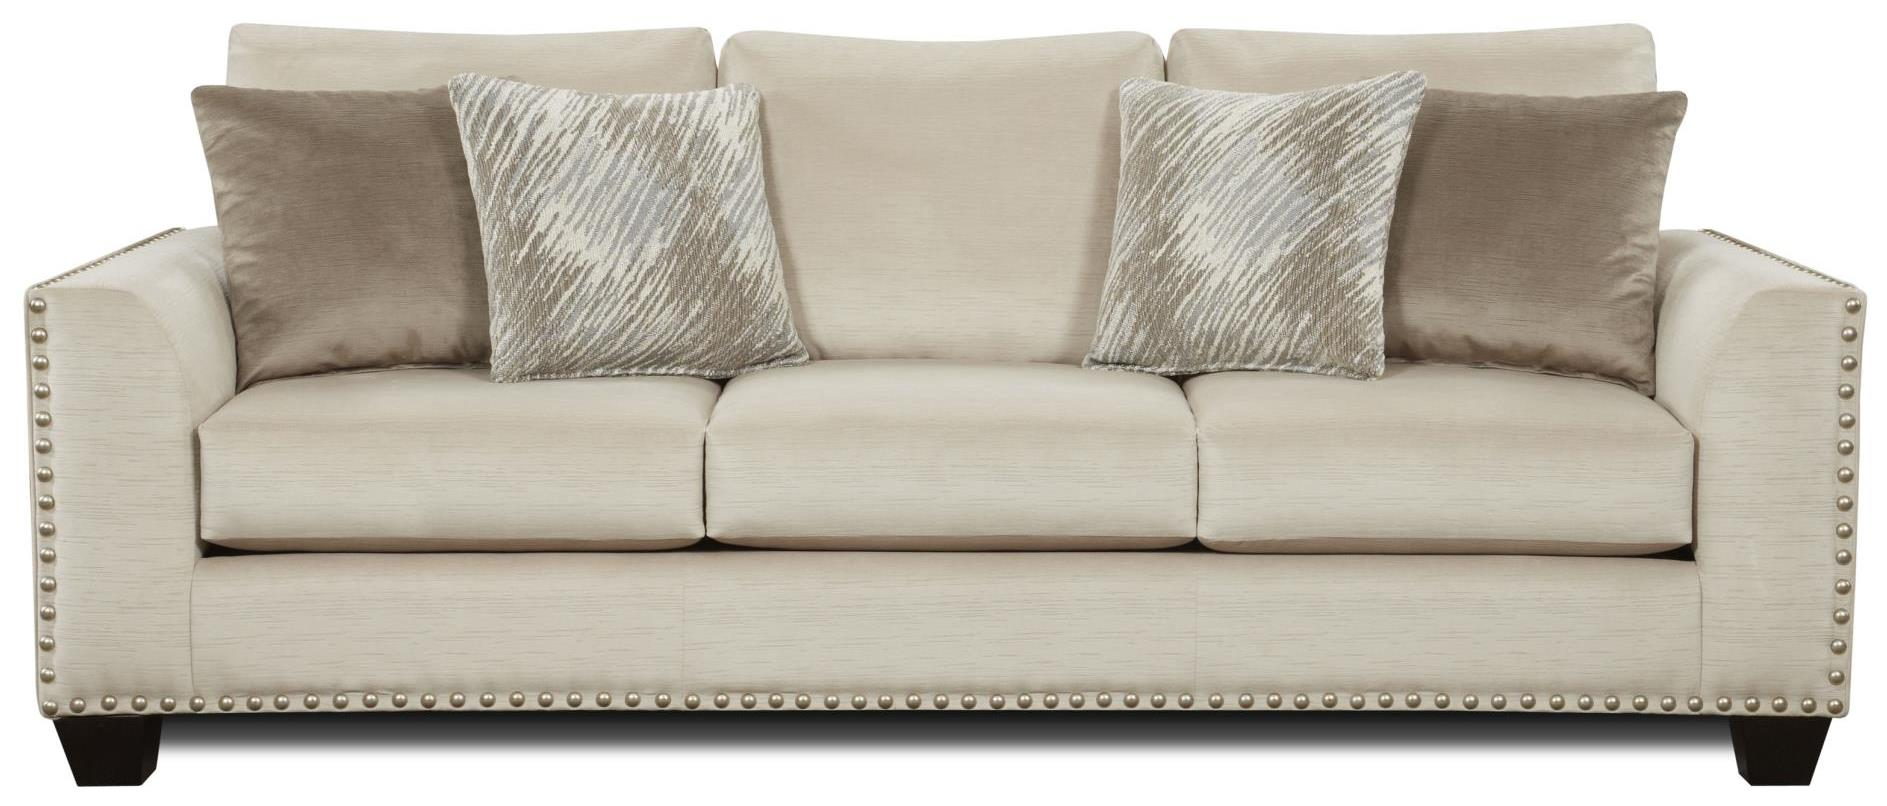 Fusion Furniture 1460 Sofa - Item Number: 1460Empire Stone